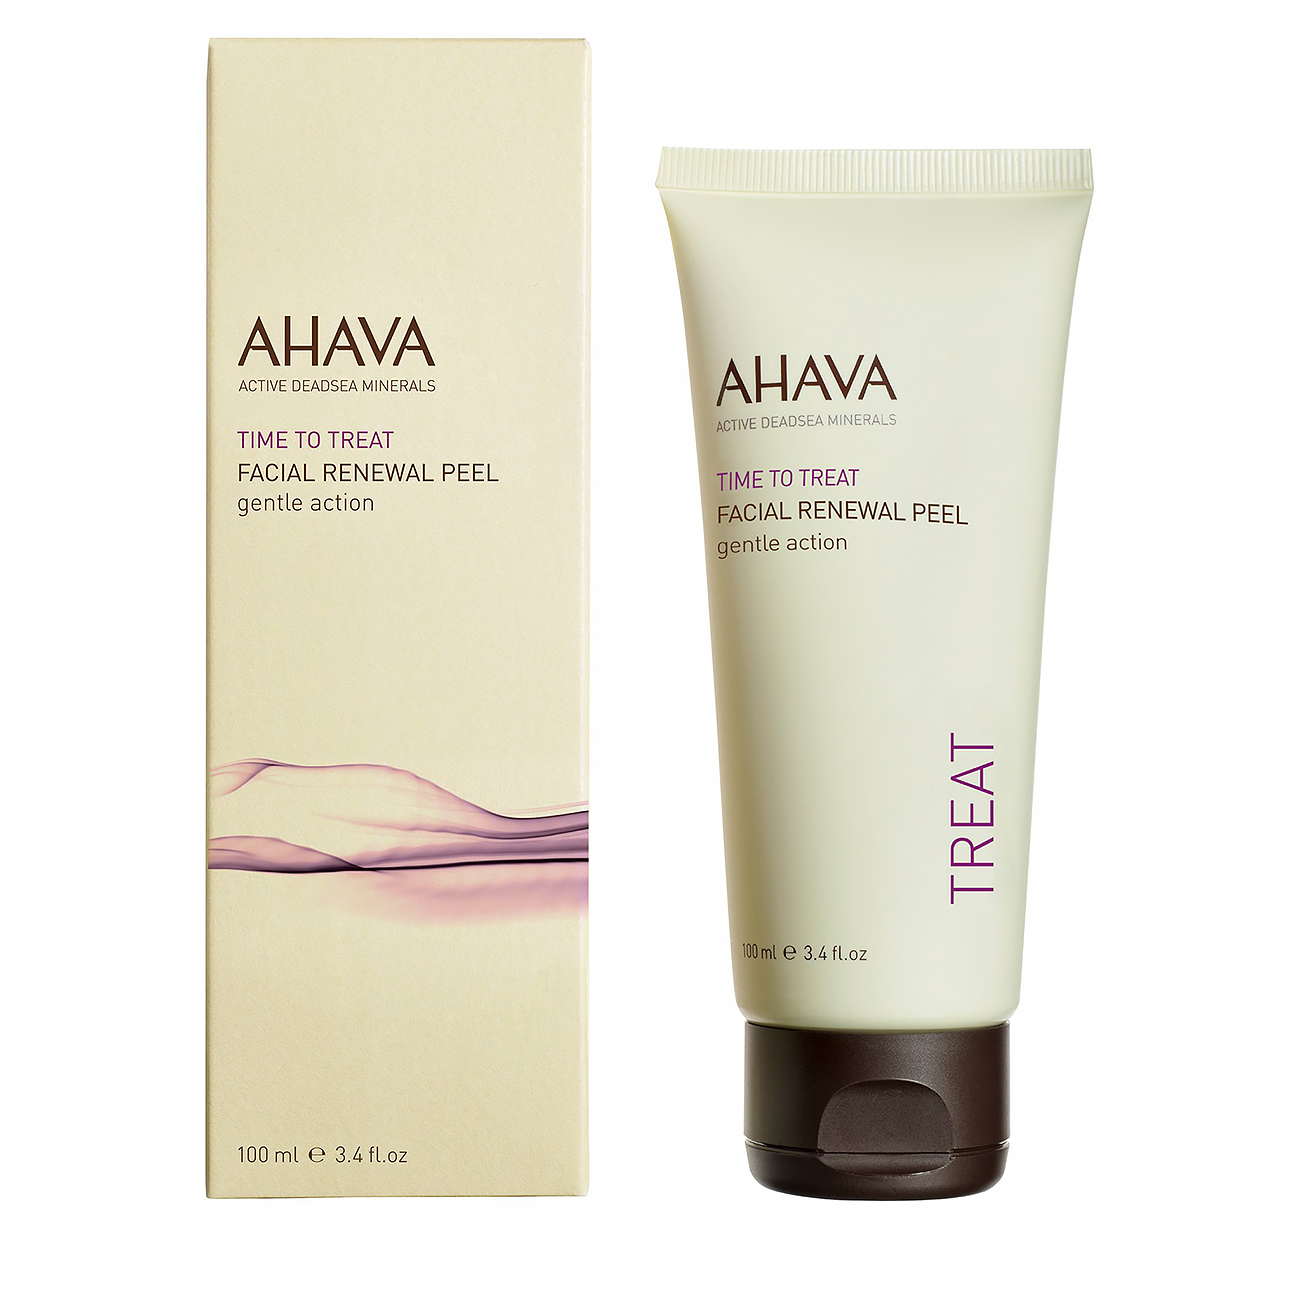 Facial Renewal Peel Gentle Action 100ml Ahava imagine 2021 bestvalue.eu